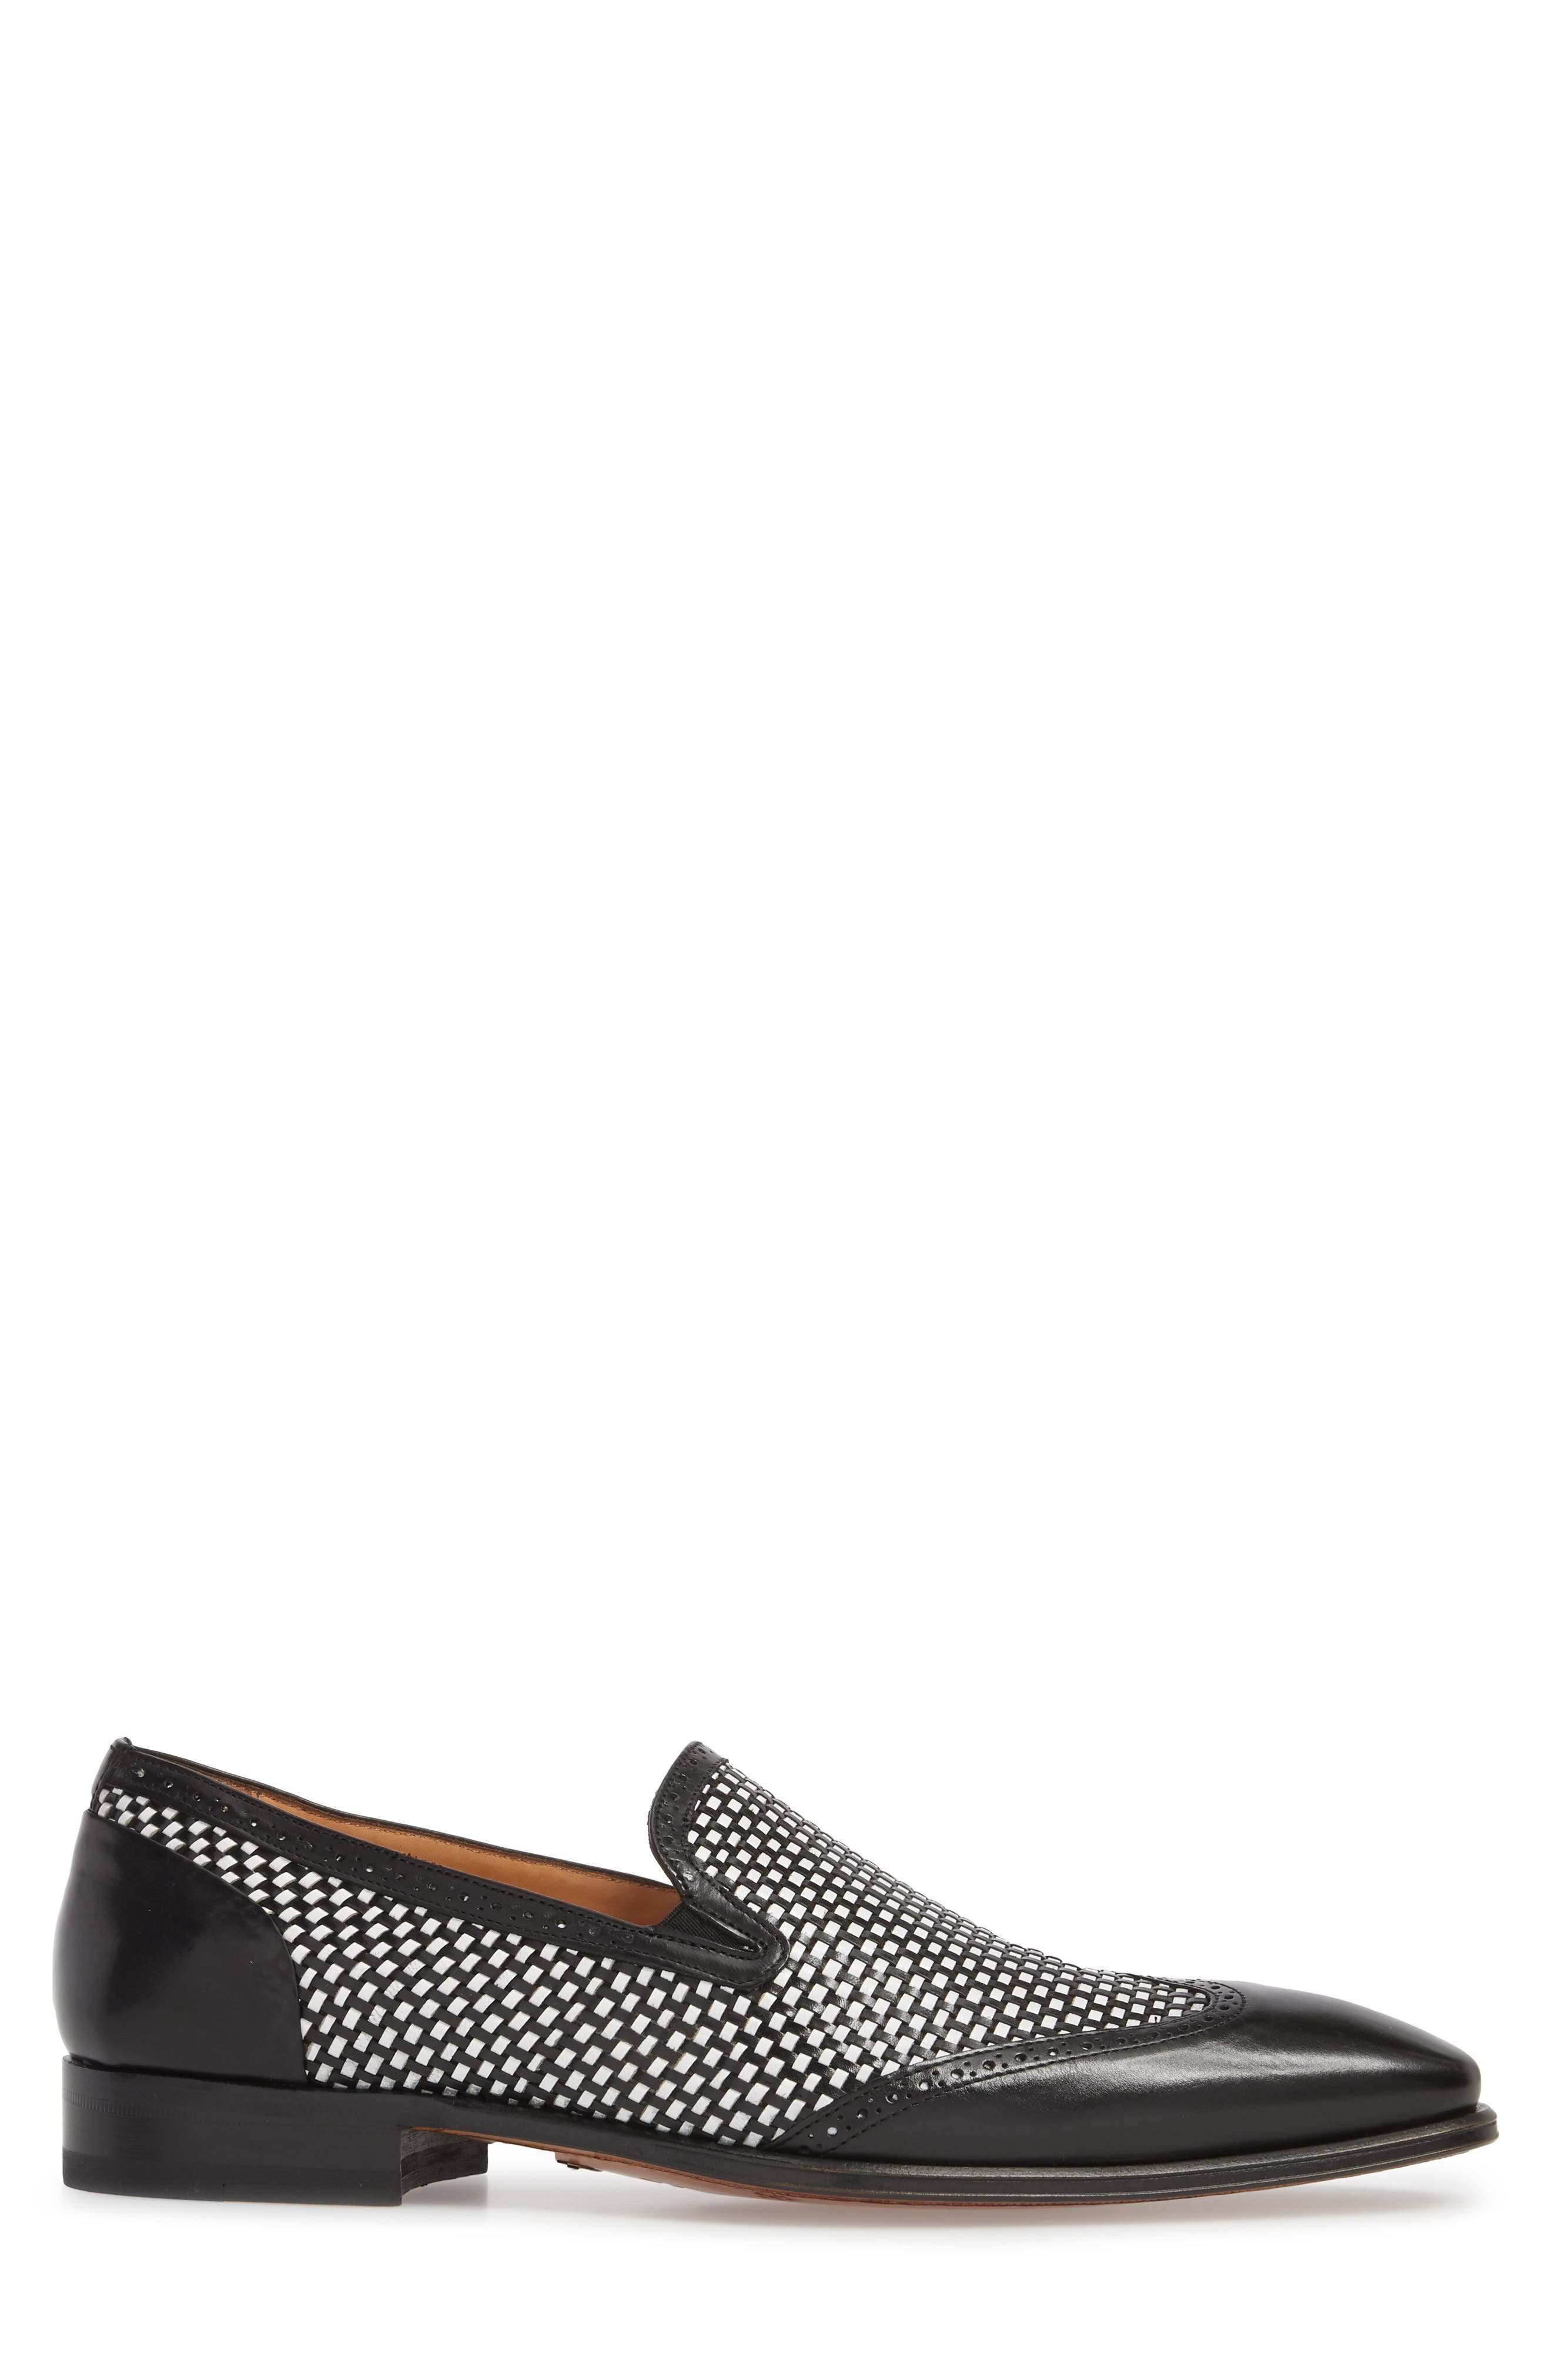 Nepos Woven Wingtip Loafer,                             Alternate thumbnail 3, color,                             Black/ White Leather